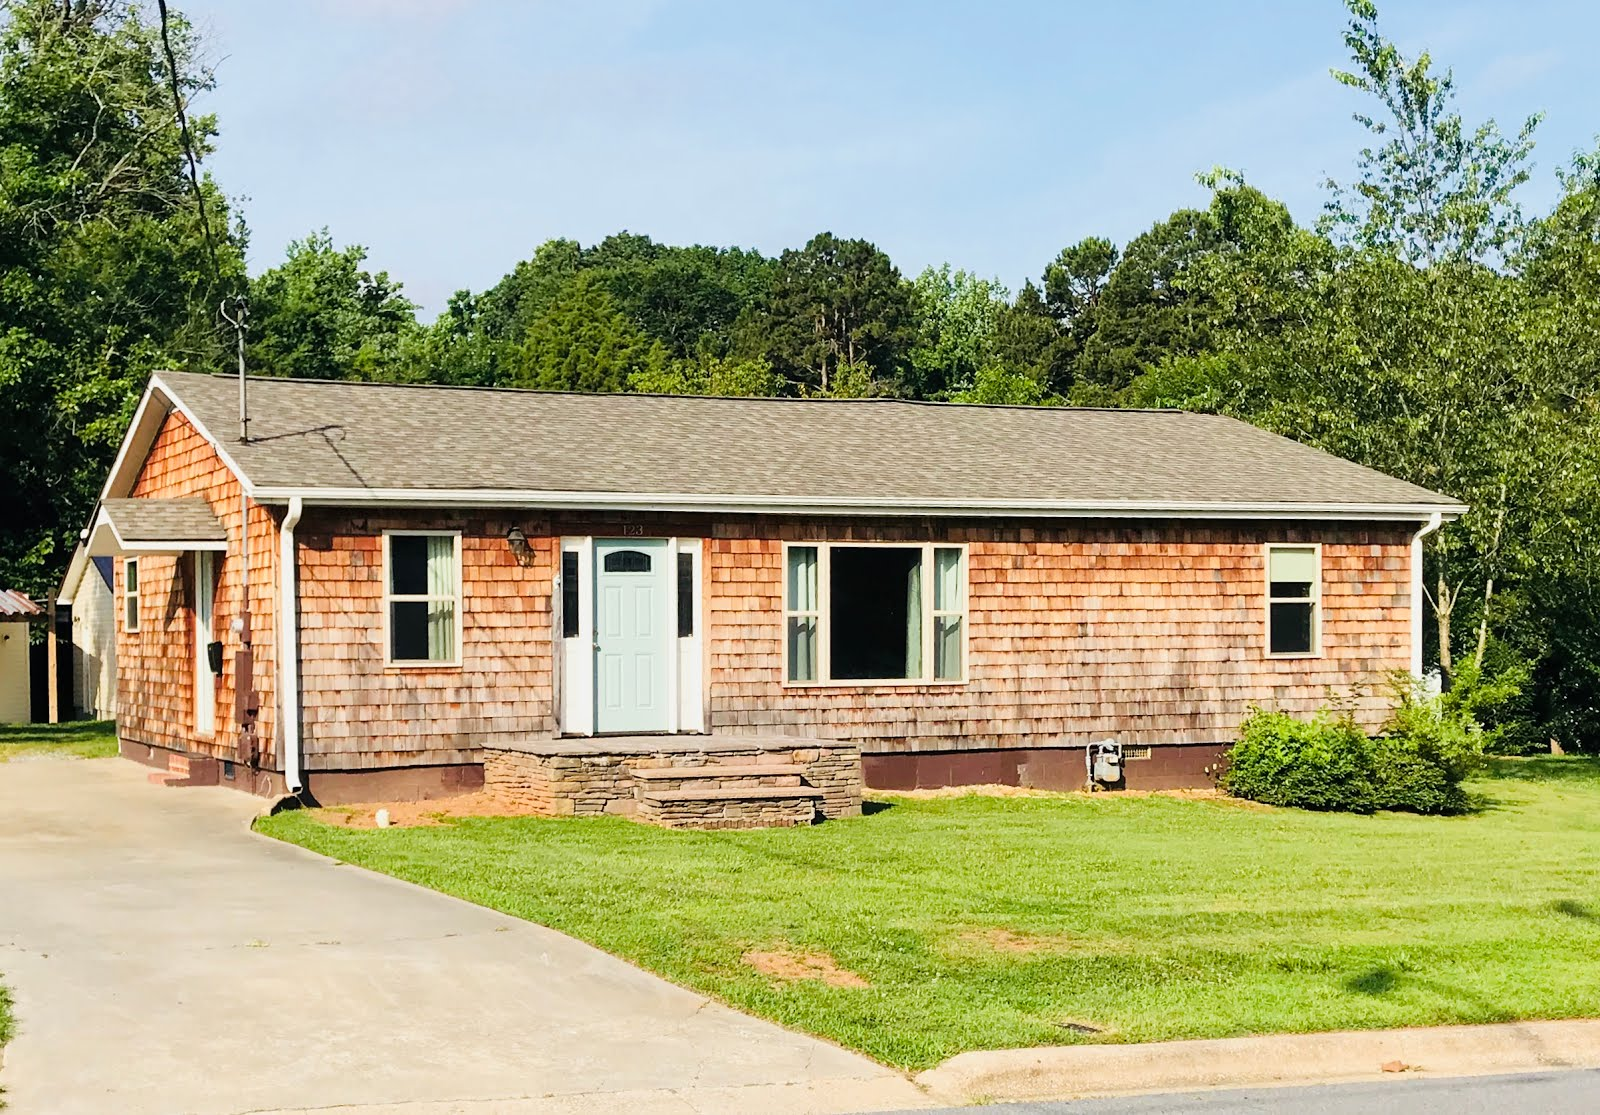 123 11th Street, Spencer NC 28159 ~ $149,500